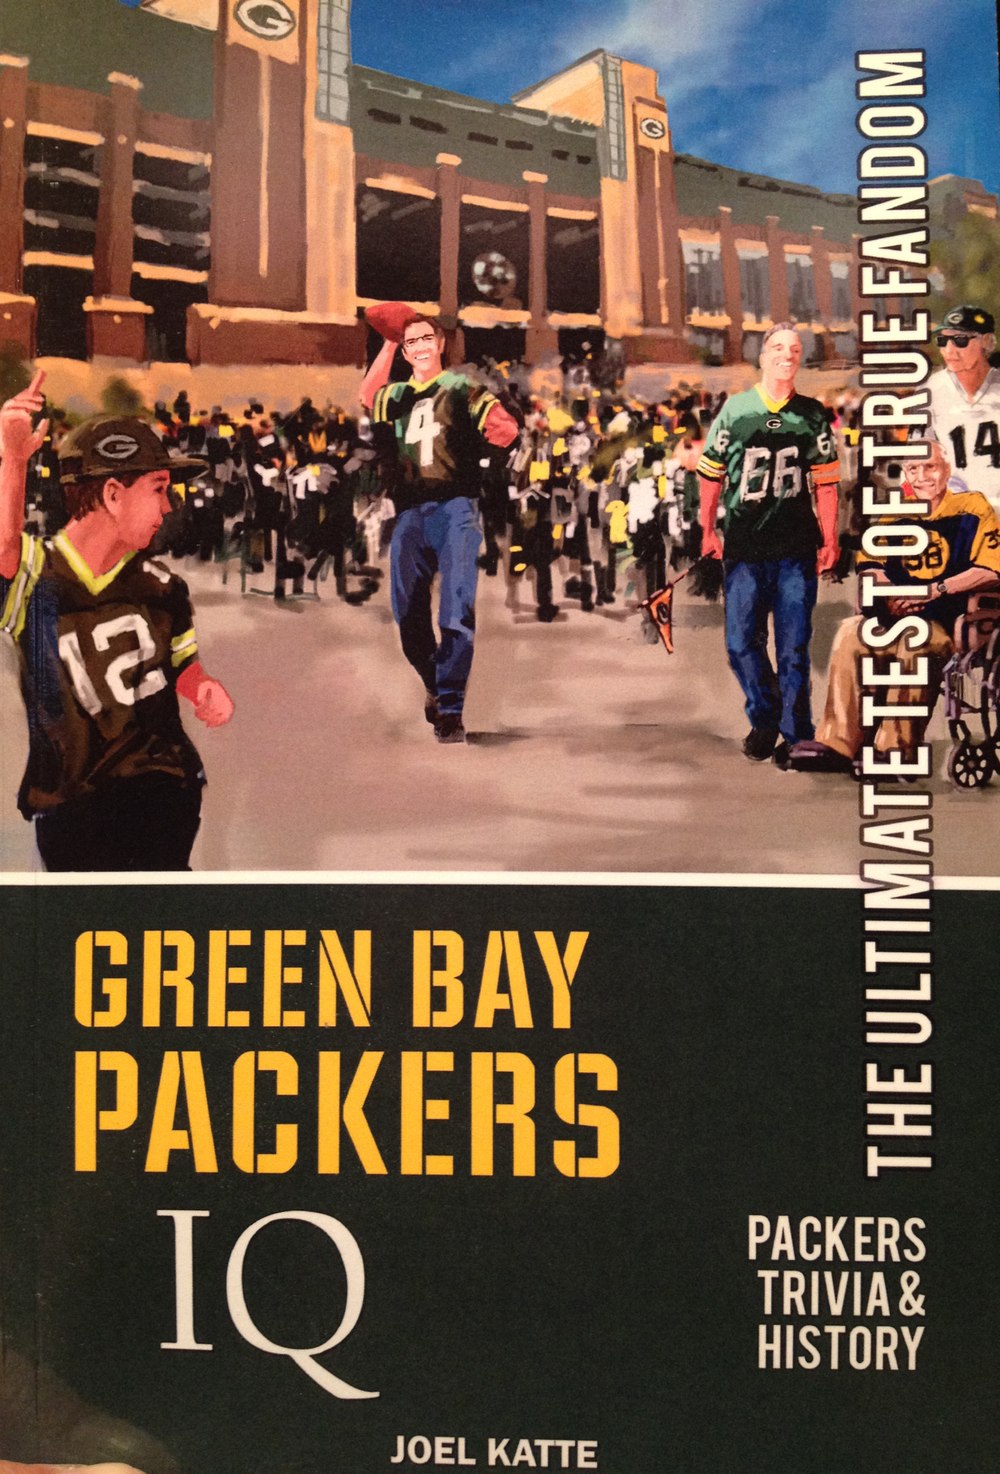 Cover Art by Jason Prigge Green Bay Packers IQ Trivia & History book by Joel Katte